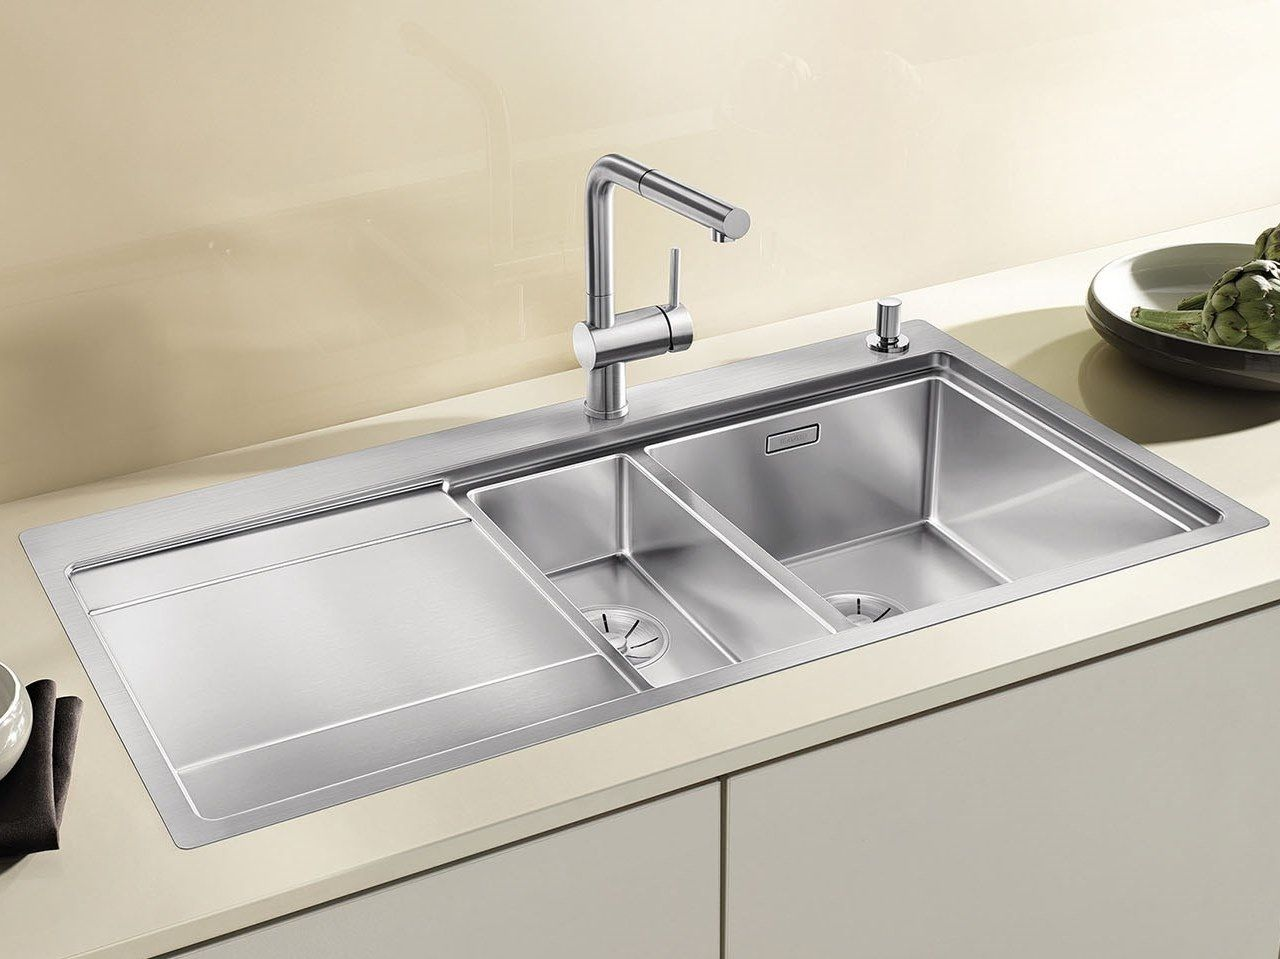 1 1 2 Bowl Built In Stainless Steel Sink With Drainer Blanco Divon Ii 6 S If By Blanco In 2020 Stainless Steel Sinks Sink Kitchen And Bath